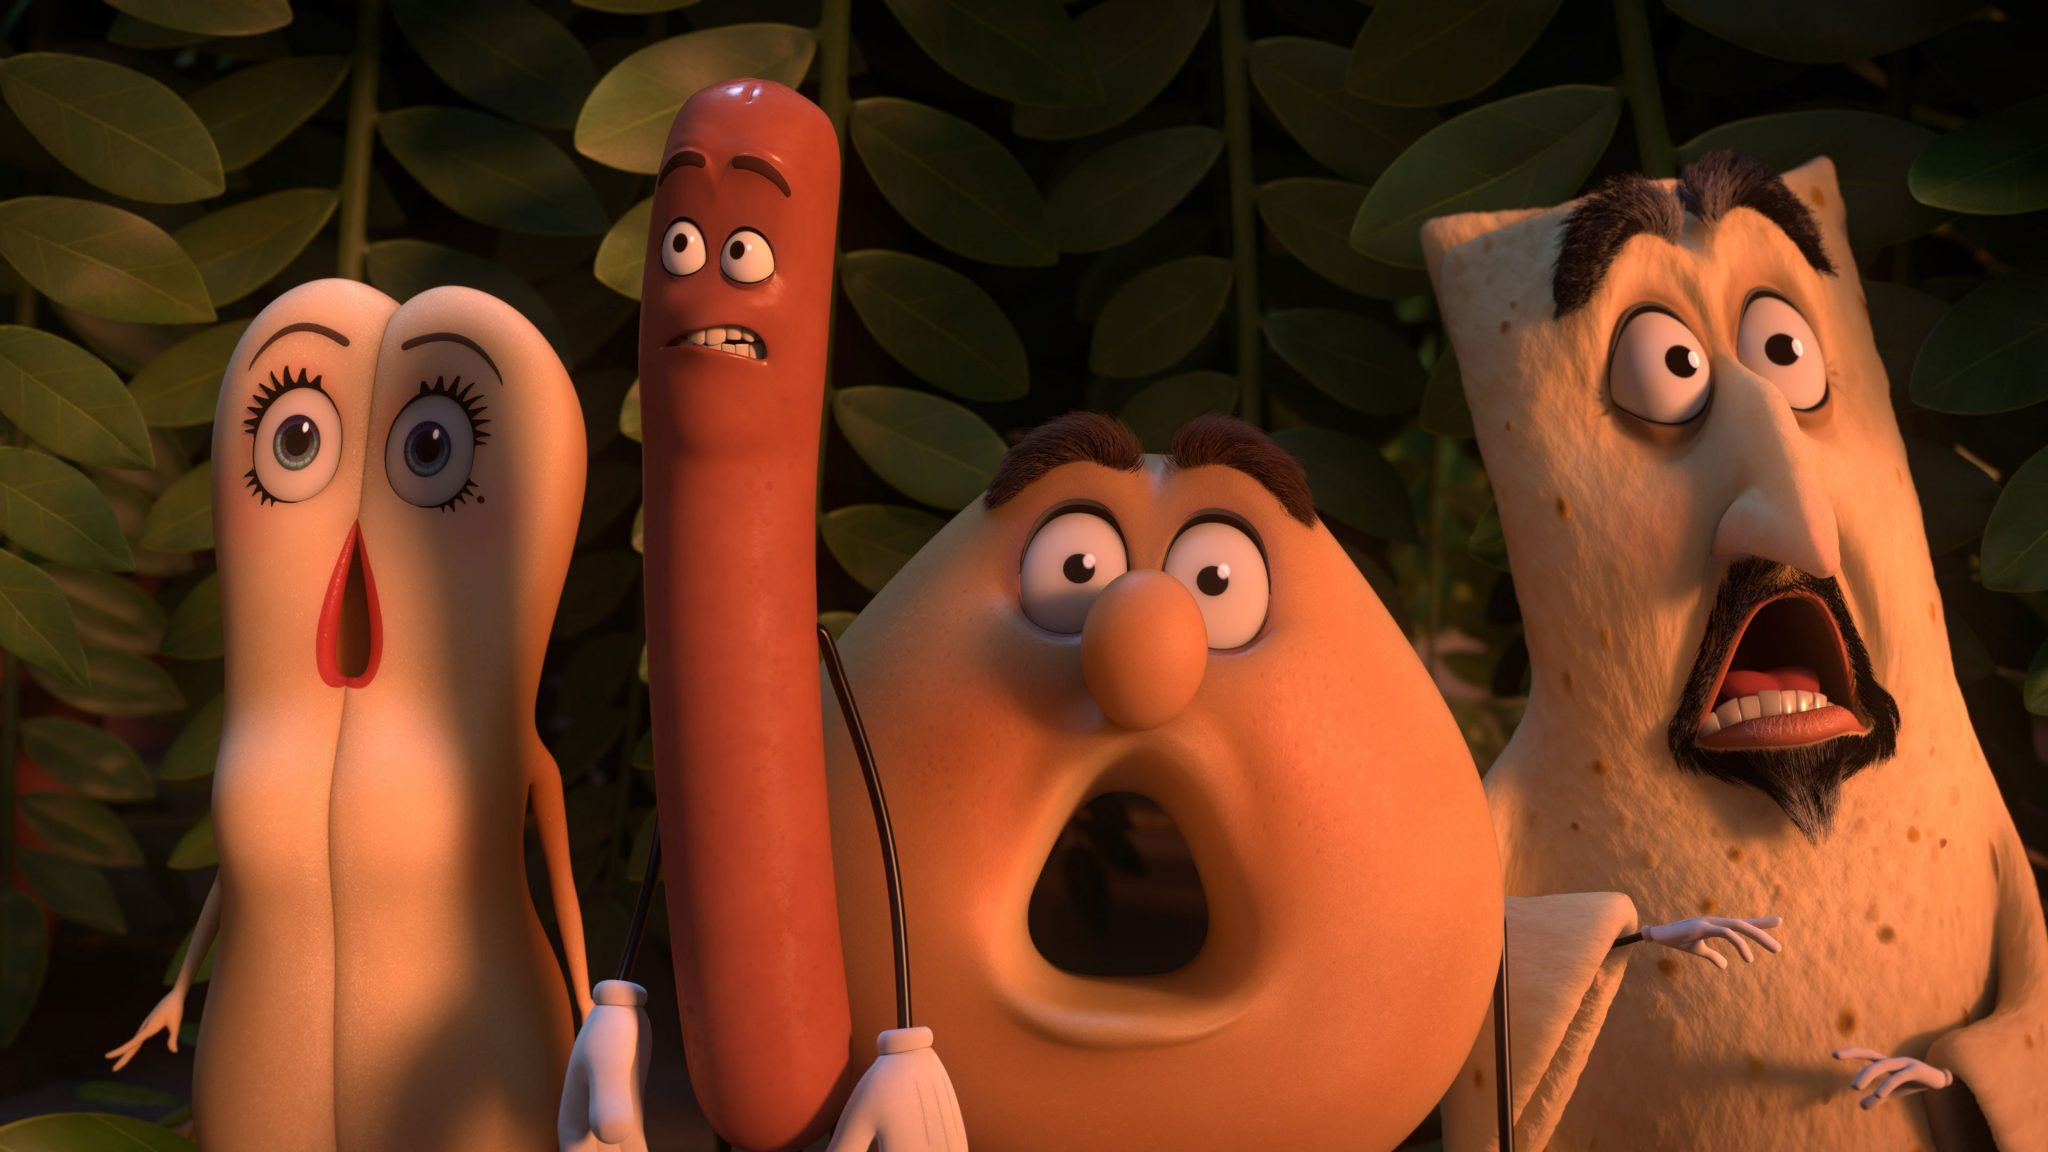 Review: 'Sausage Party' Should Have Been a Lot More Satisfying